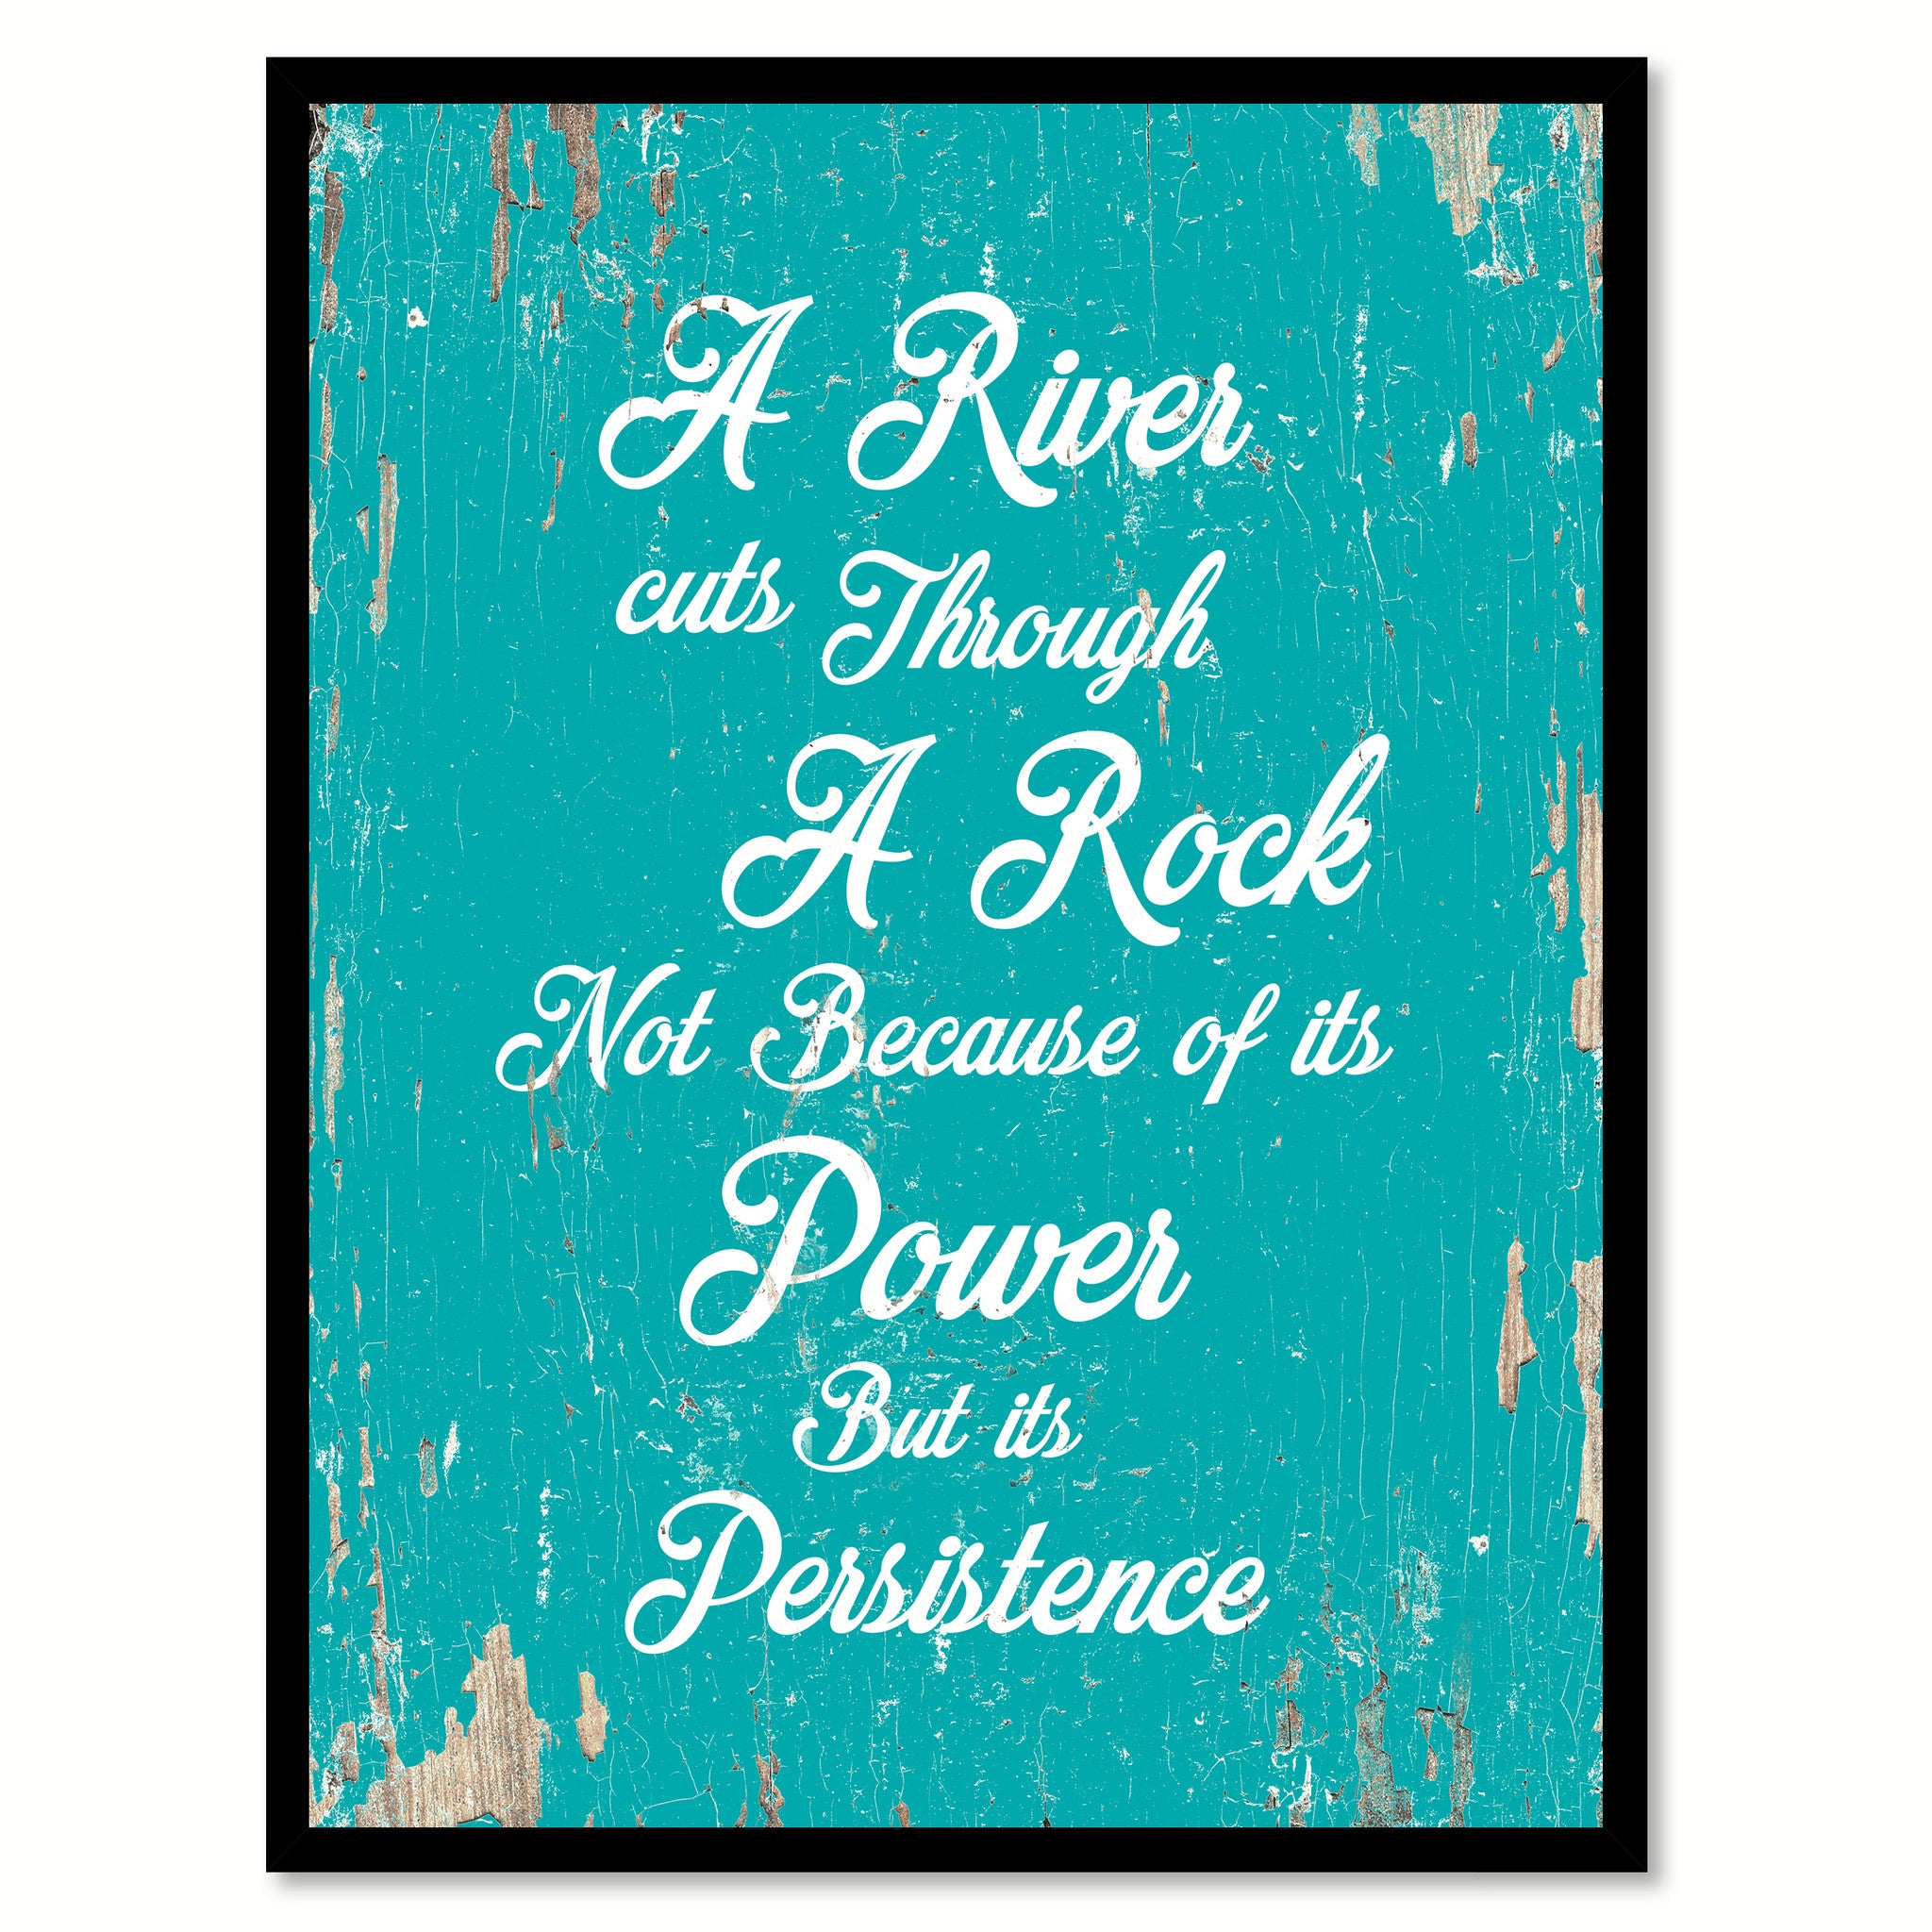 A River Cuts Through A Rock Motivation Quote Saying Gift Ideas Home Decor Wall Art 111438